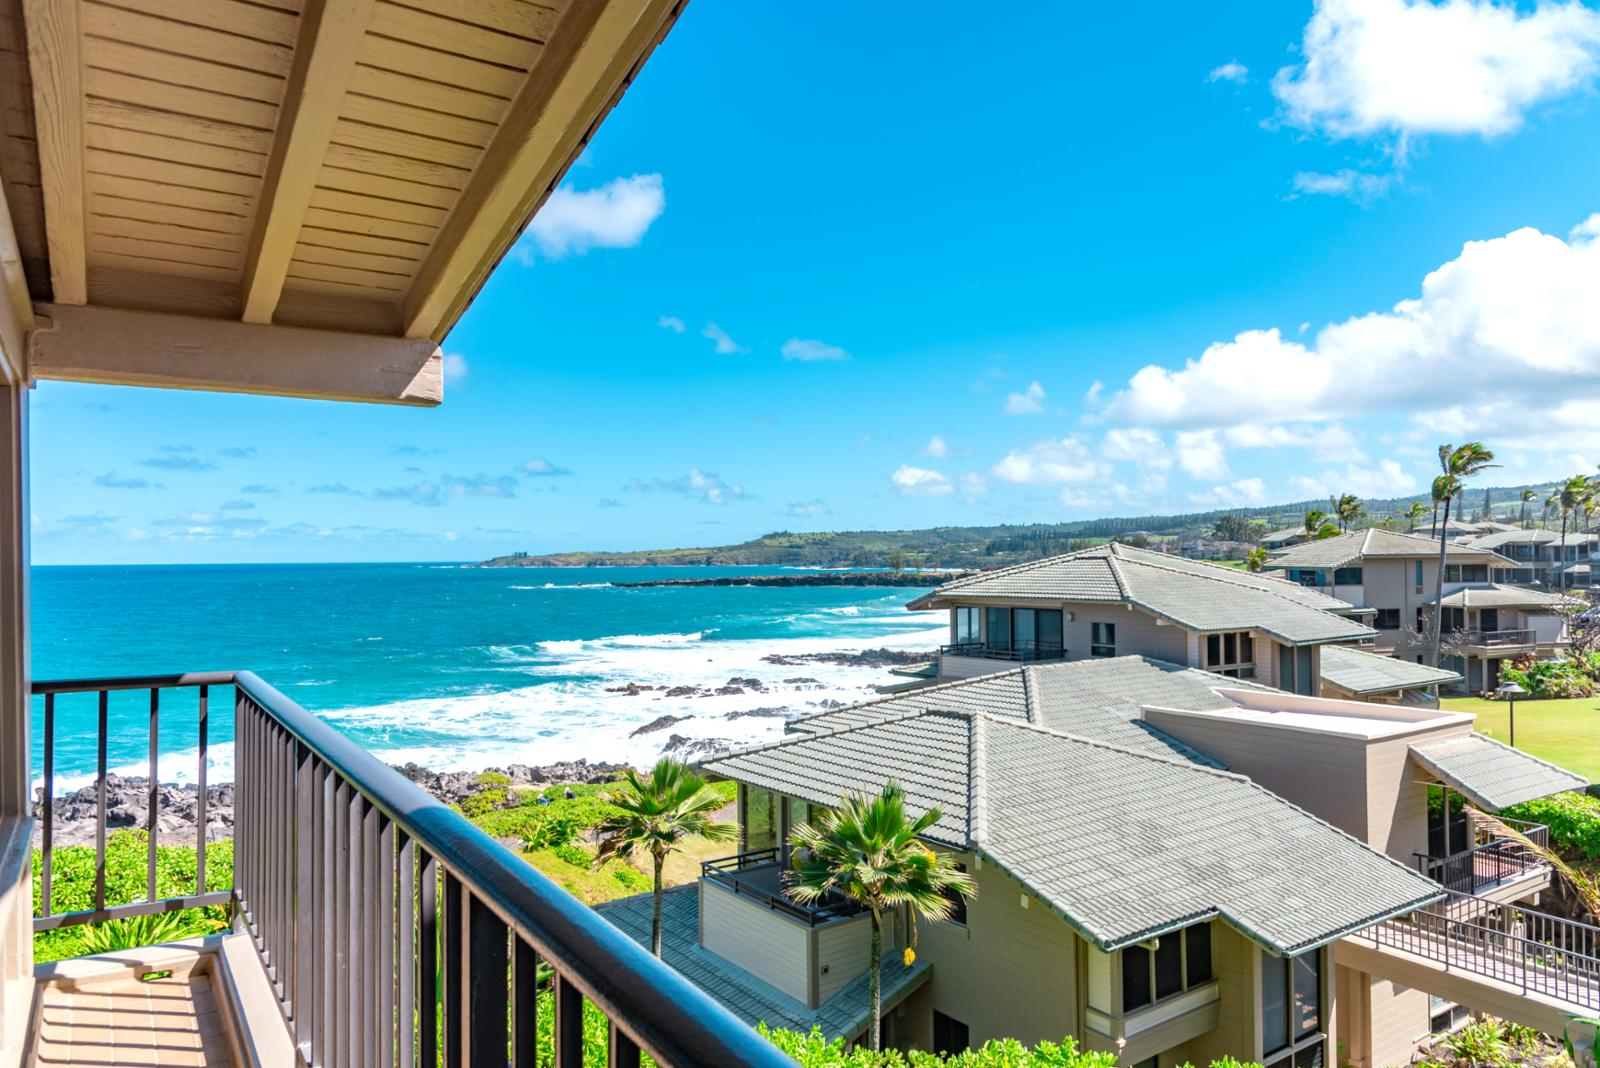 Easy beach access just steps away from your unit